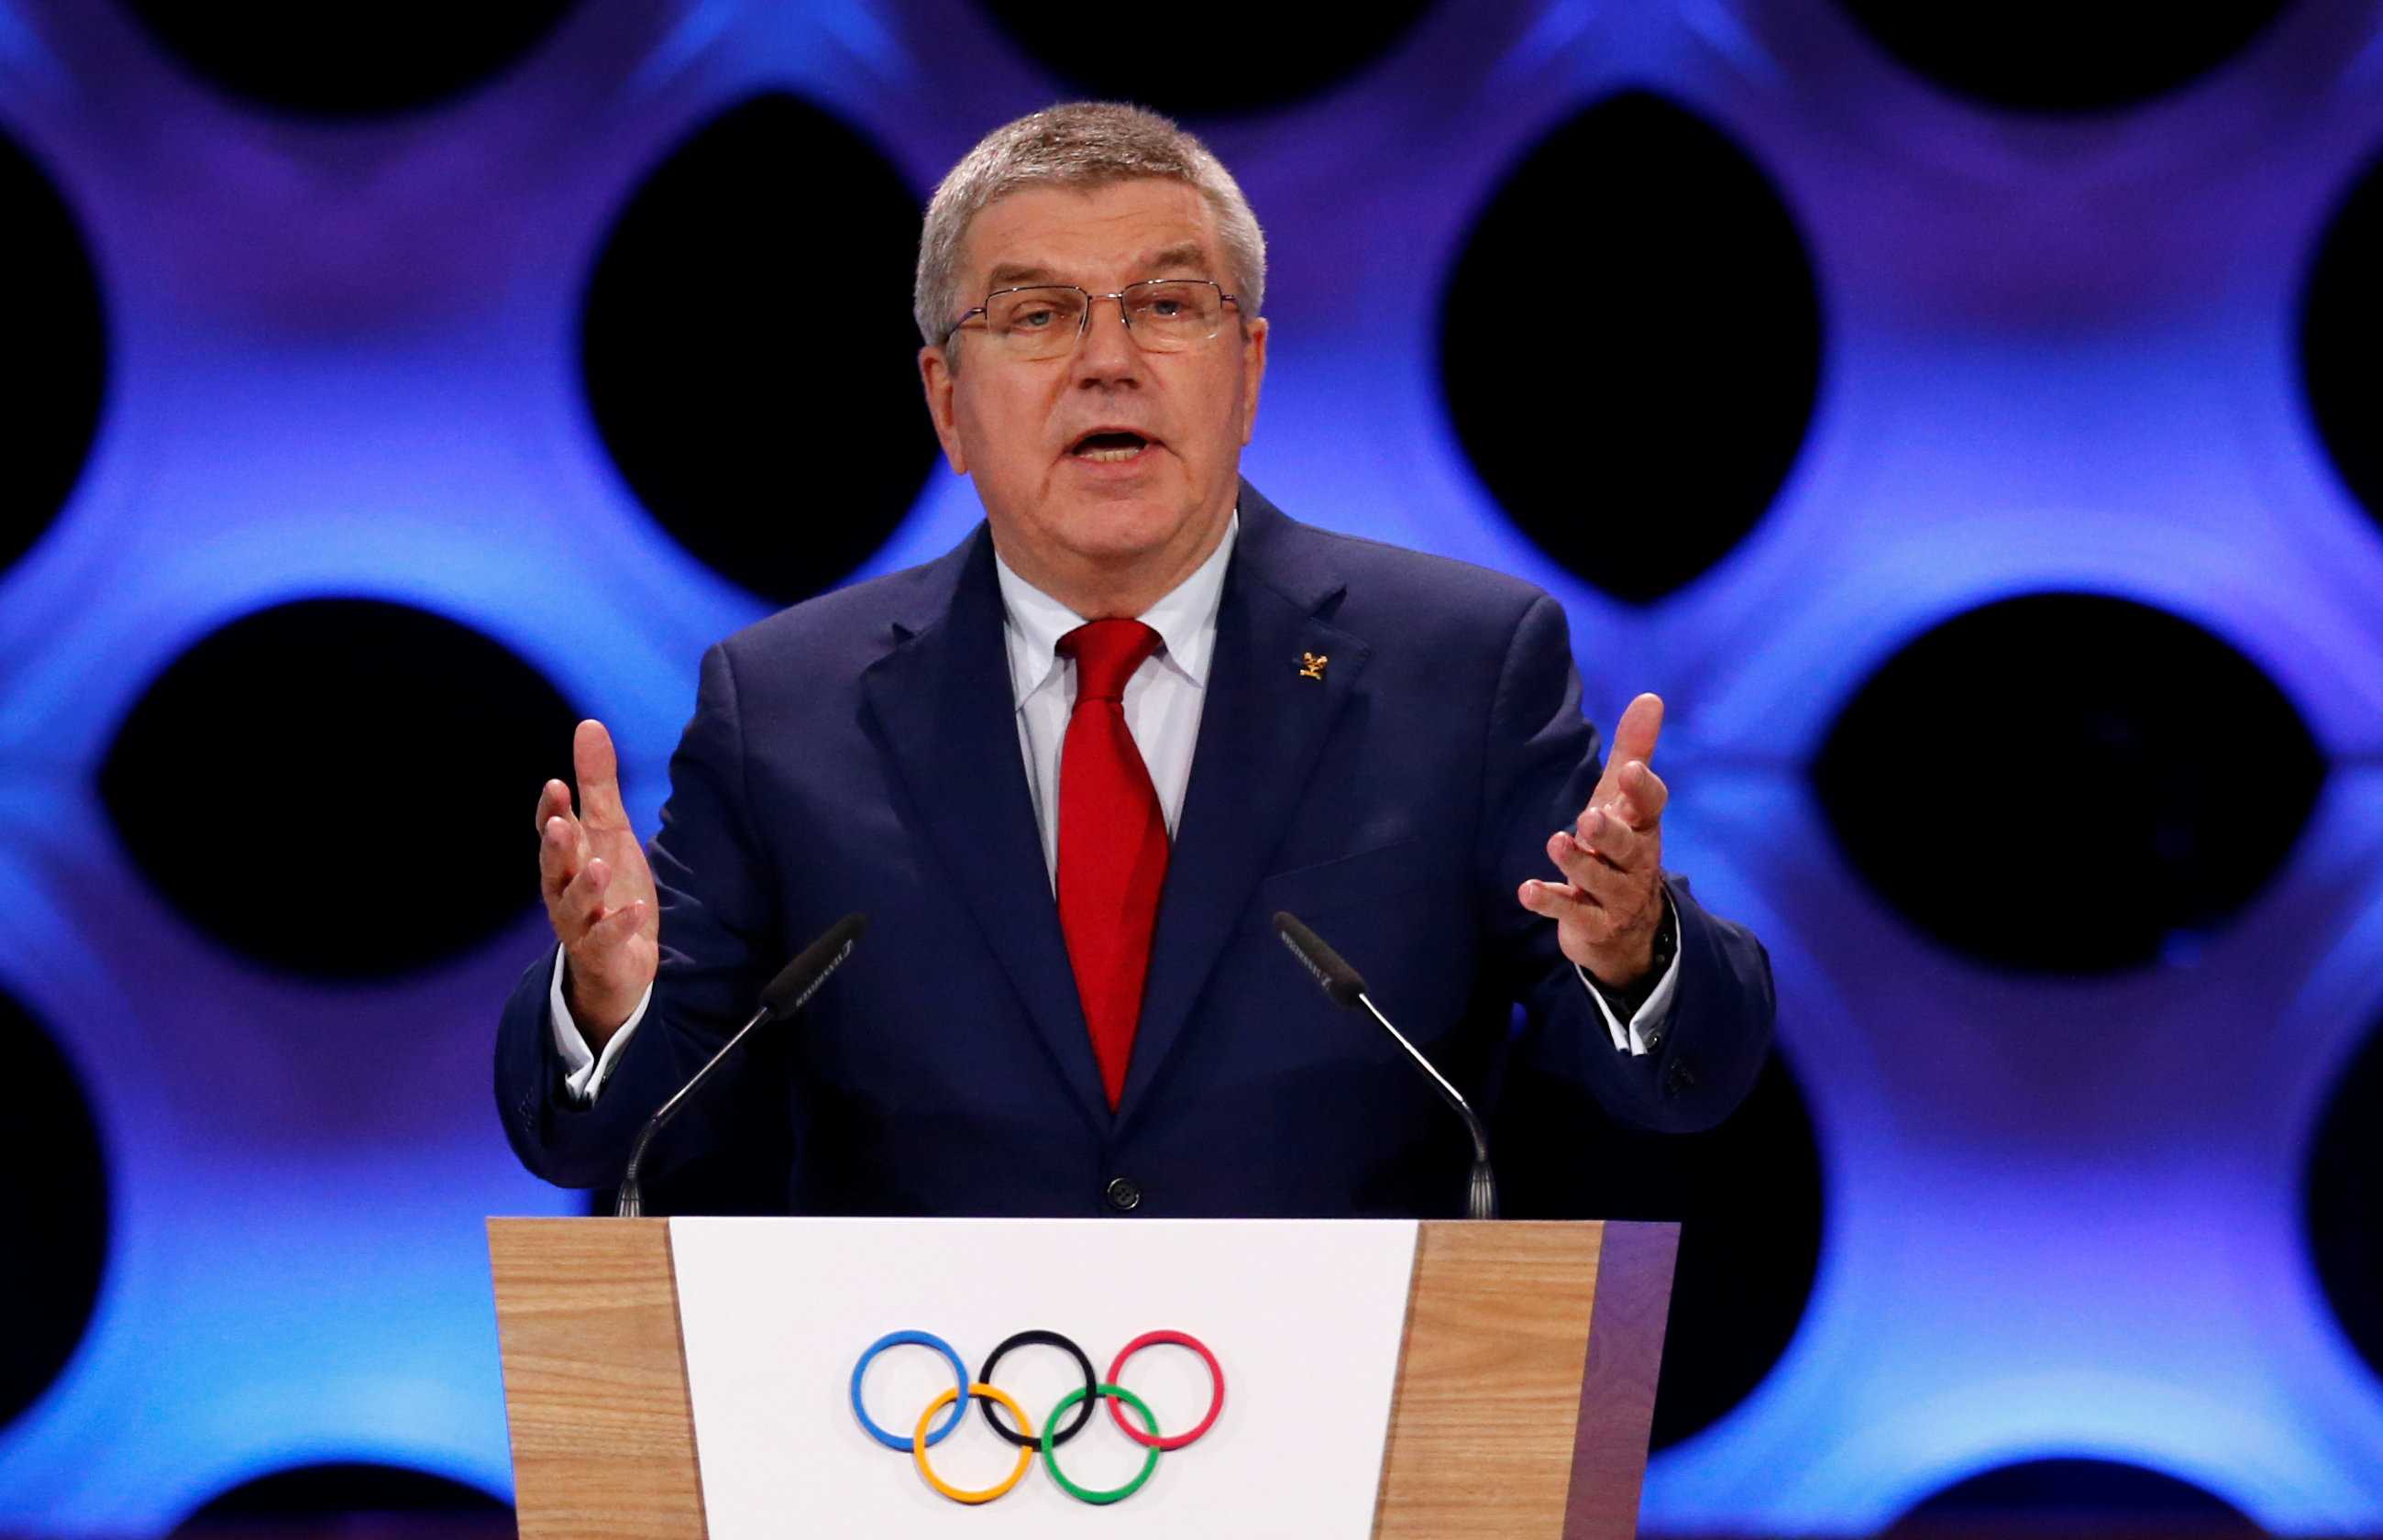 International Olympic Committee (IOC) President Thomas Bach attends the 131st IOC session in Lima, Peru on Sept. 13, 2017. (REUTERS/Mariana Bazo)